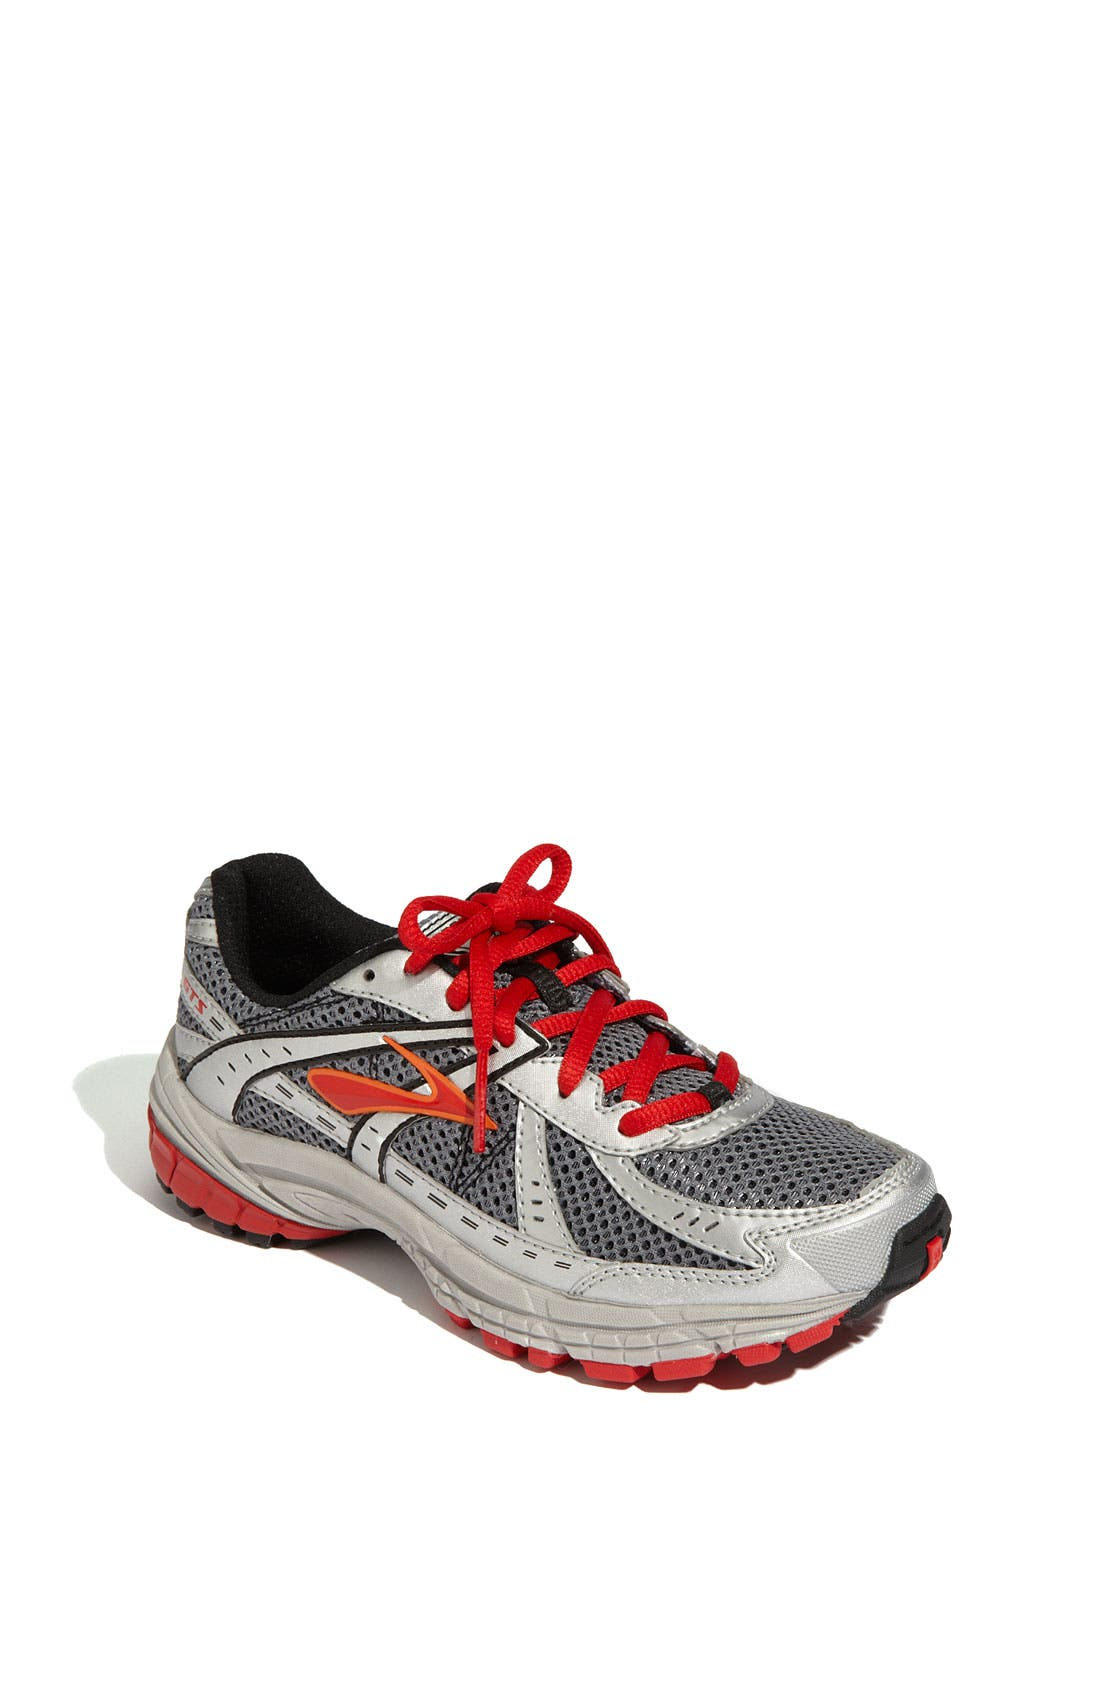 BROOKS 'Adrenaline' Running Shoe, Main, color, 020